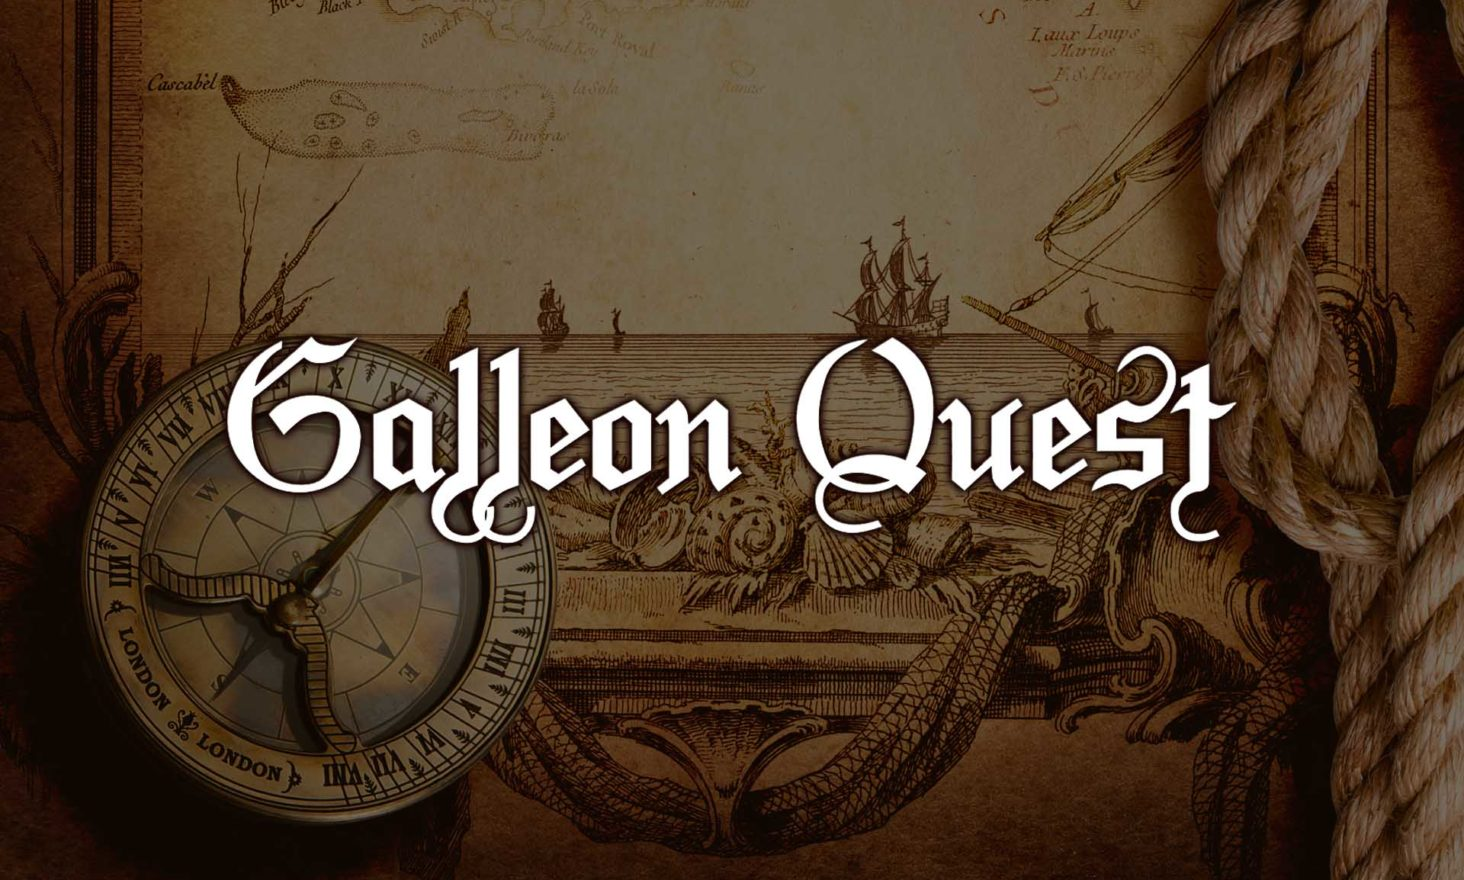 Are You Ready to Join Our Quest and Find Sunken Treasure?